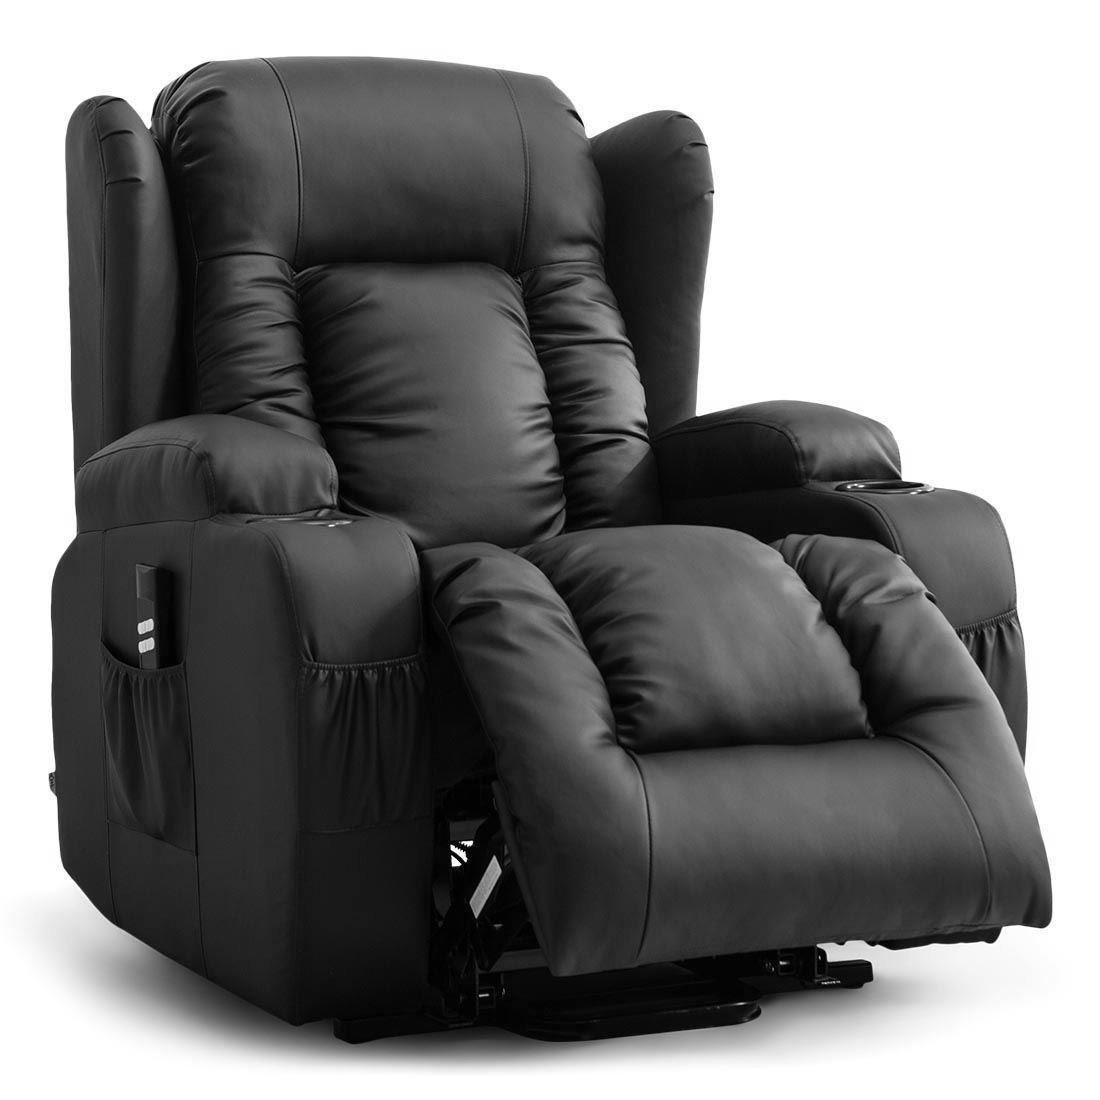 CAESAR-DUAL-MOTOR-RISER-RECLINER-LEATHER-MOBILITY-ARMCHAIR-MASSAGE-HEATED-CHAIR thumbnail 4